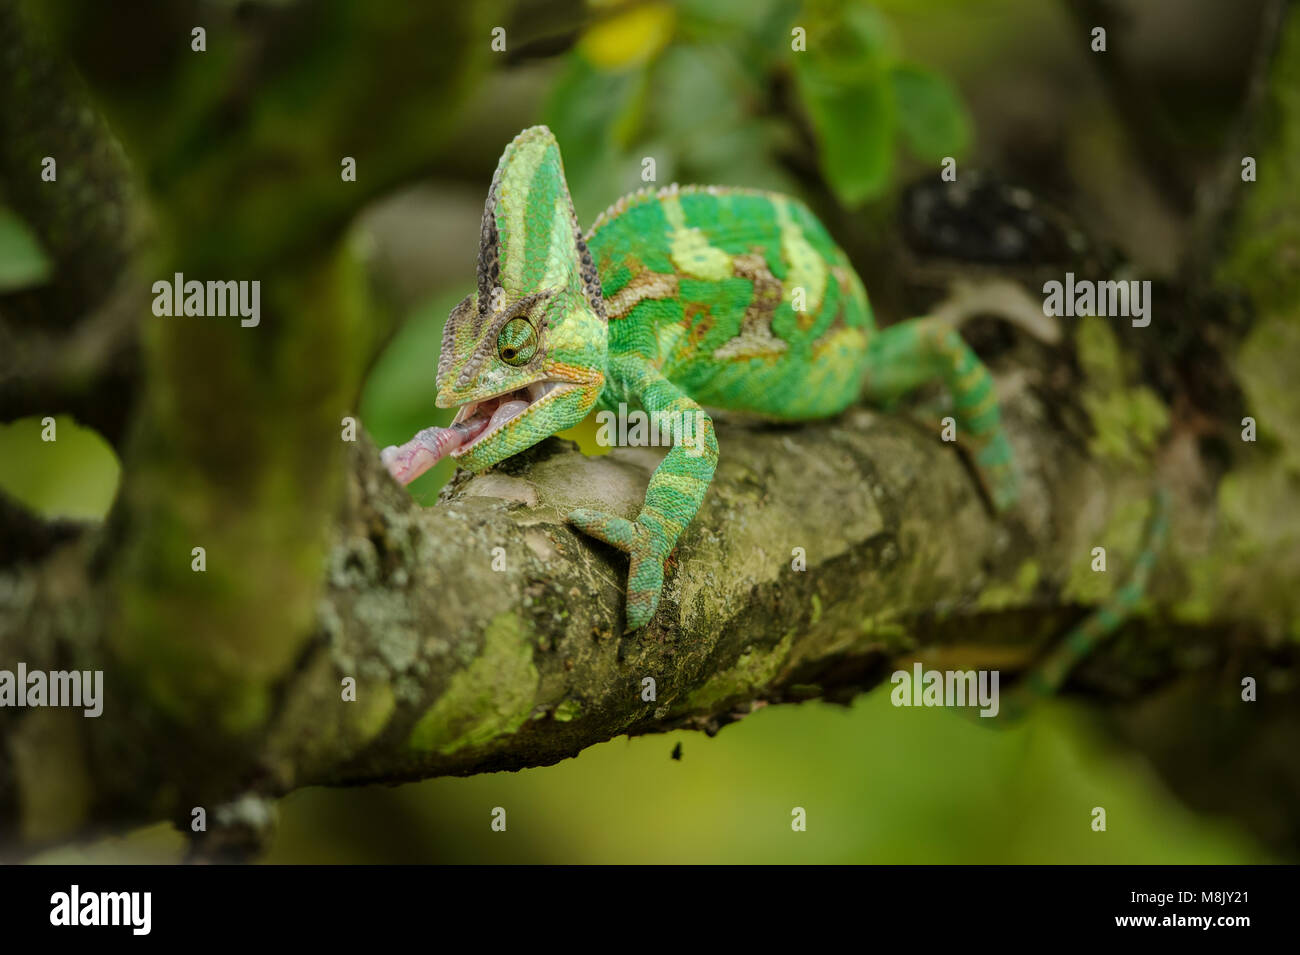 Closeup front view on hunting chameleon on tree branch - Stock Image